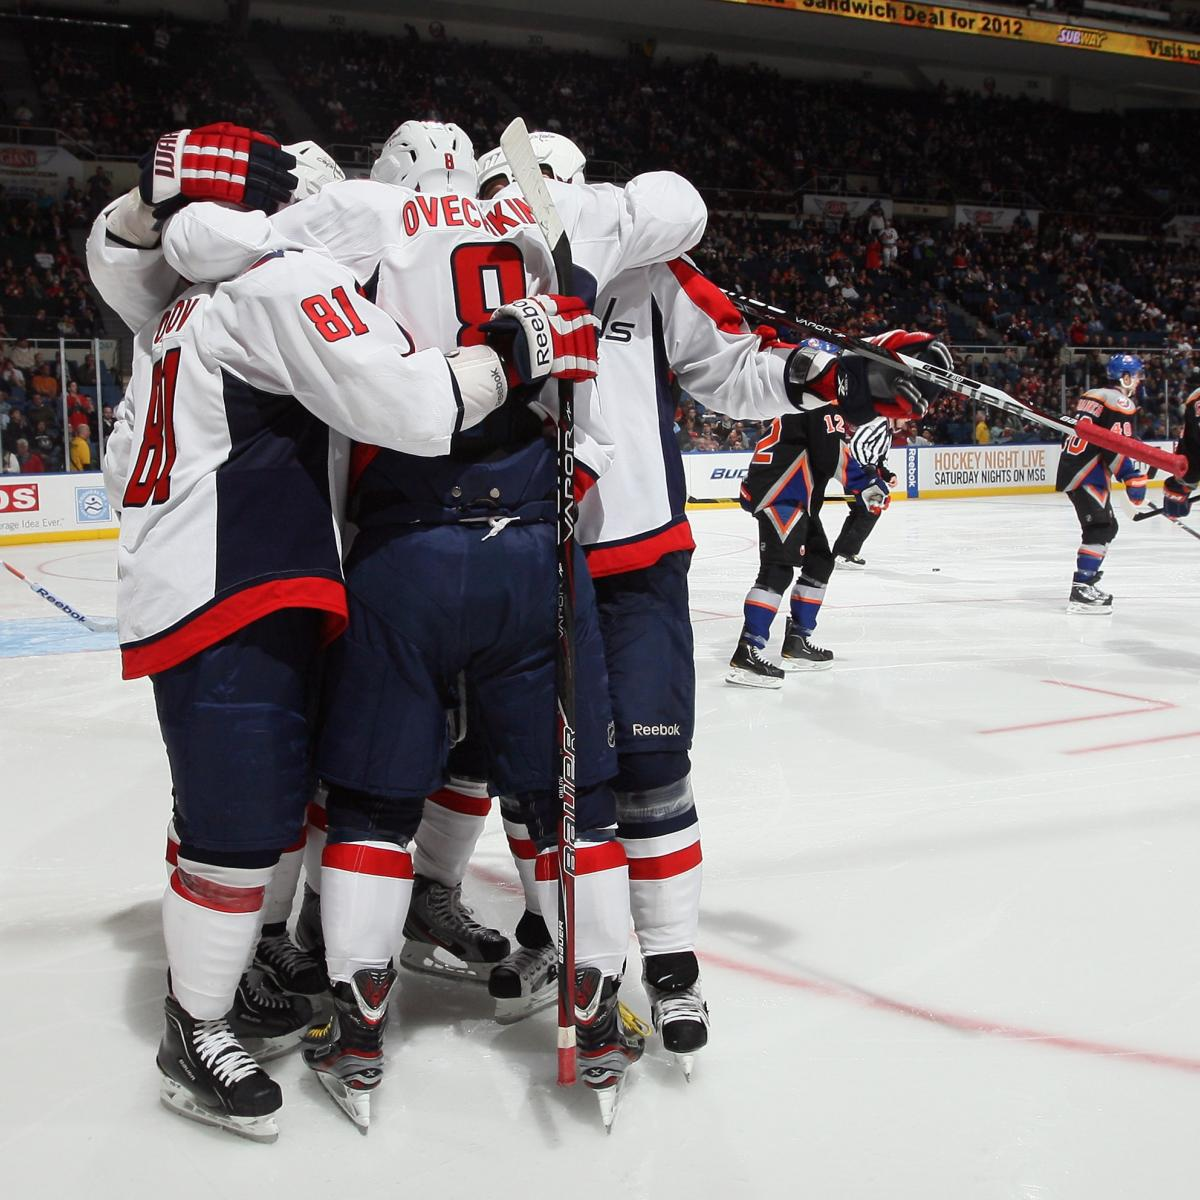 83a5ee9f111 Washington Capitals Must Continue Winning Ways in Winnipeg ...